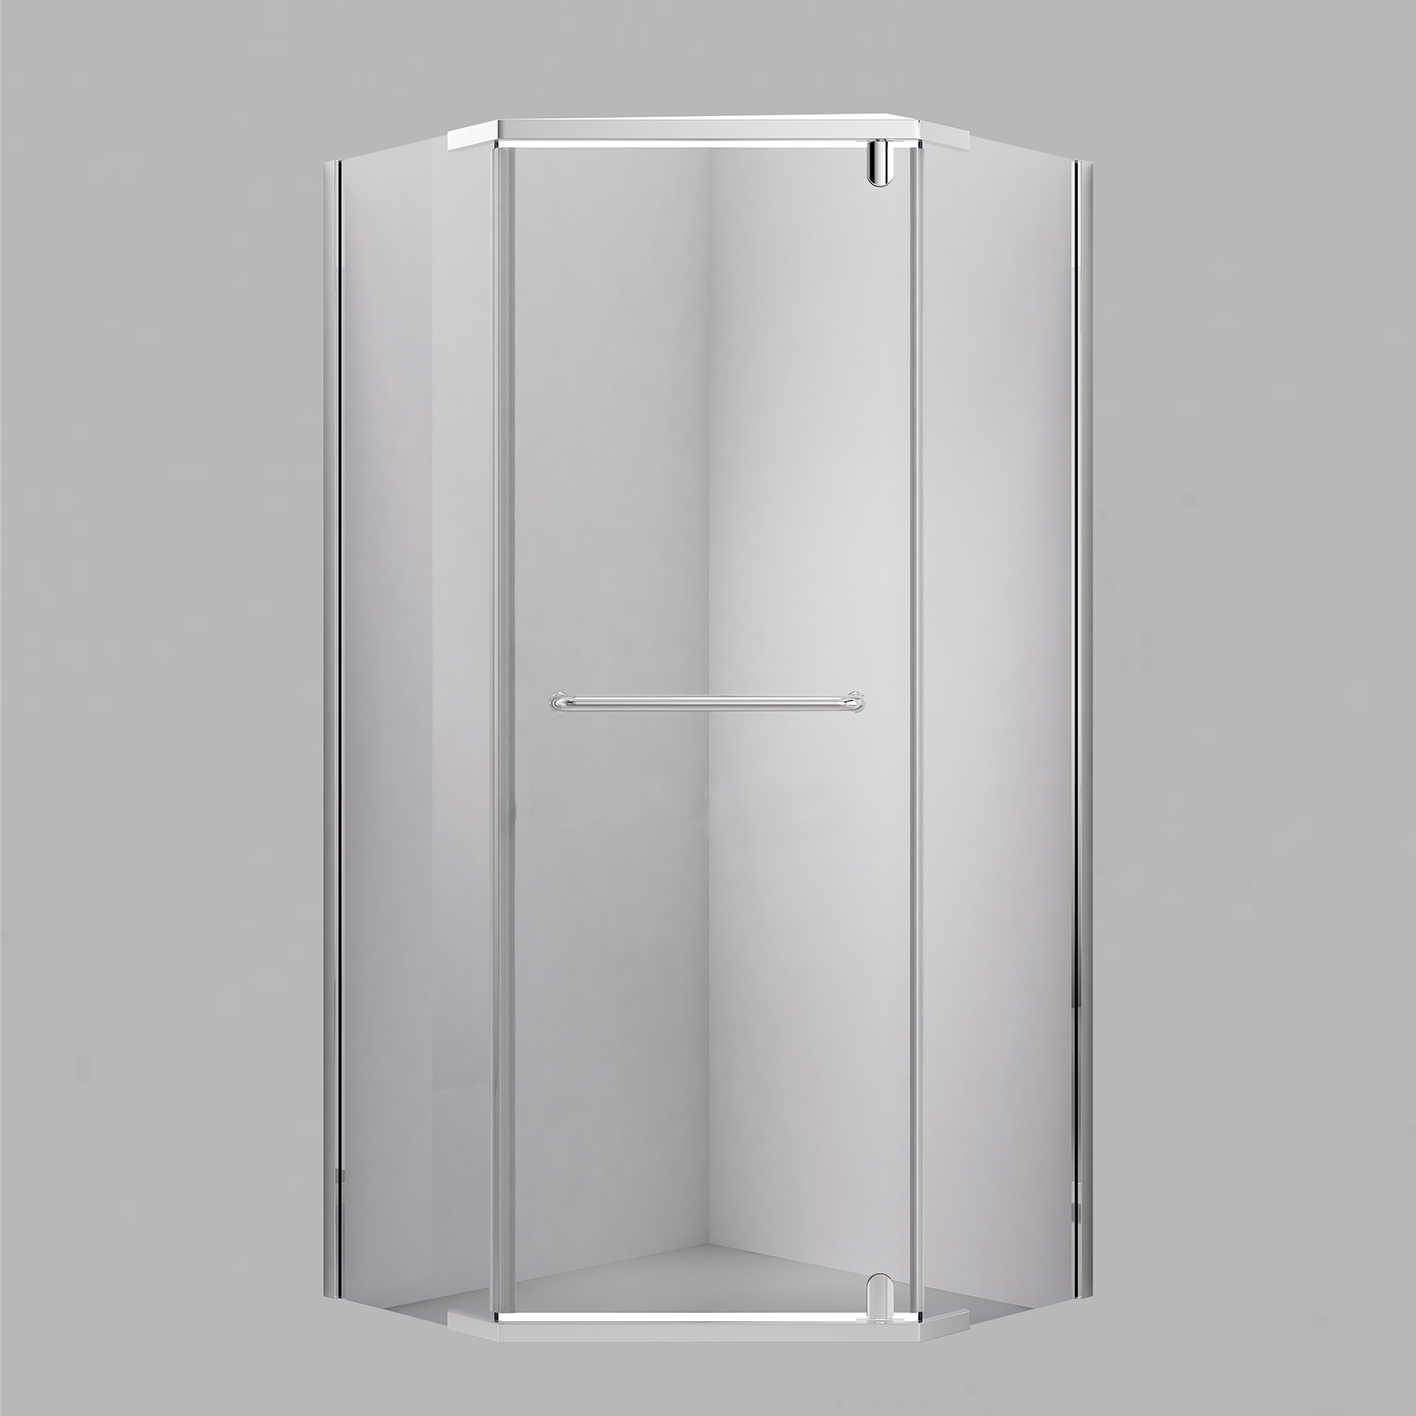 Neo Angle Shower Doors Archives - Acritec Industries